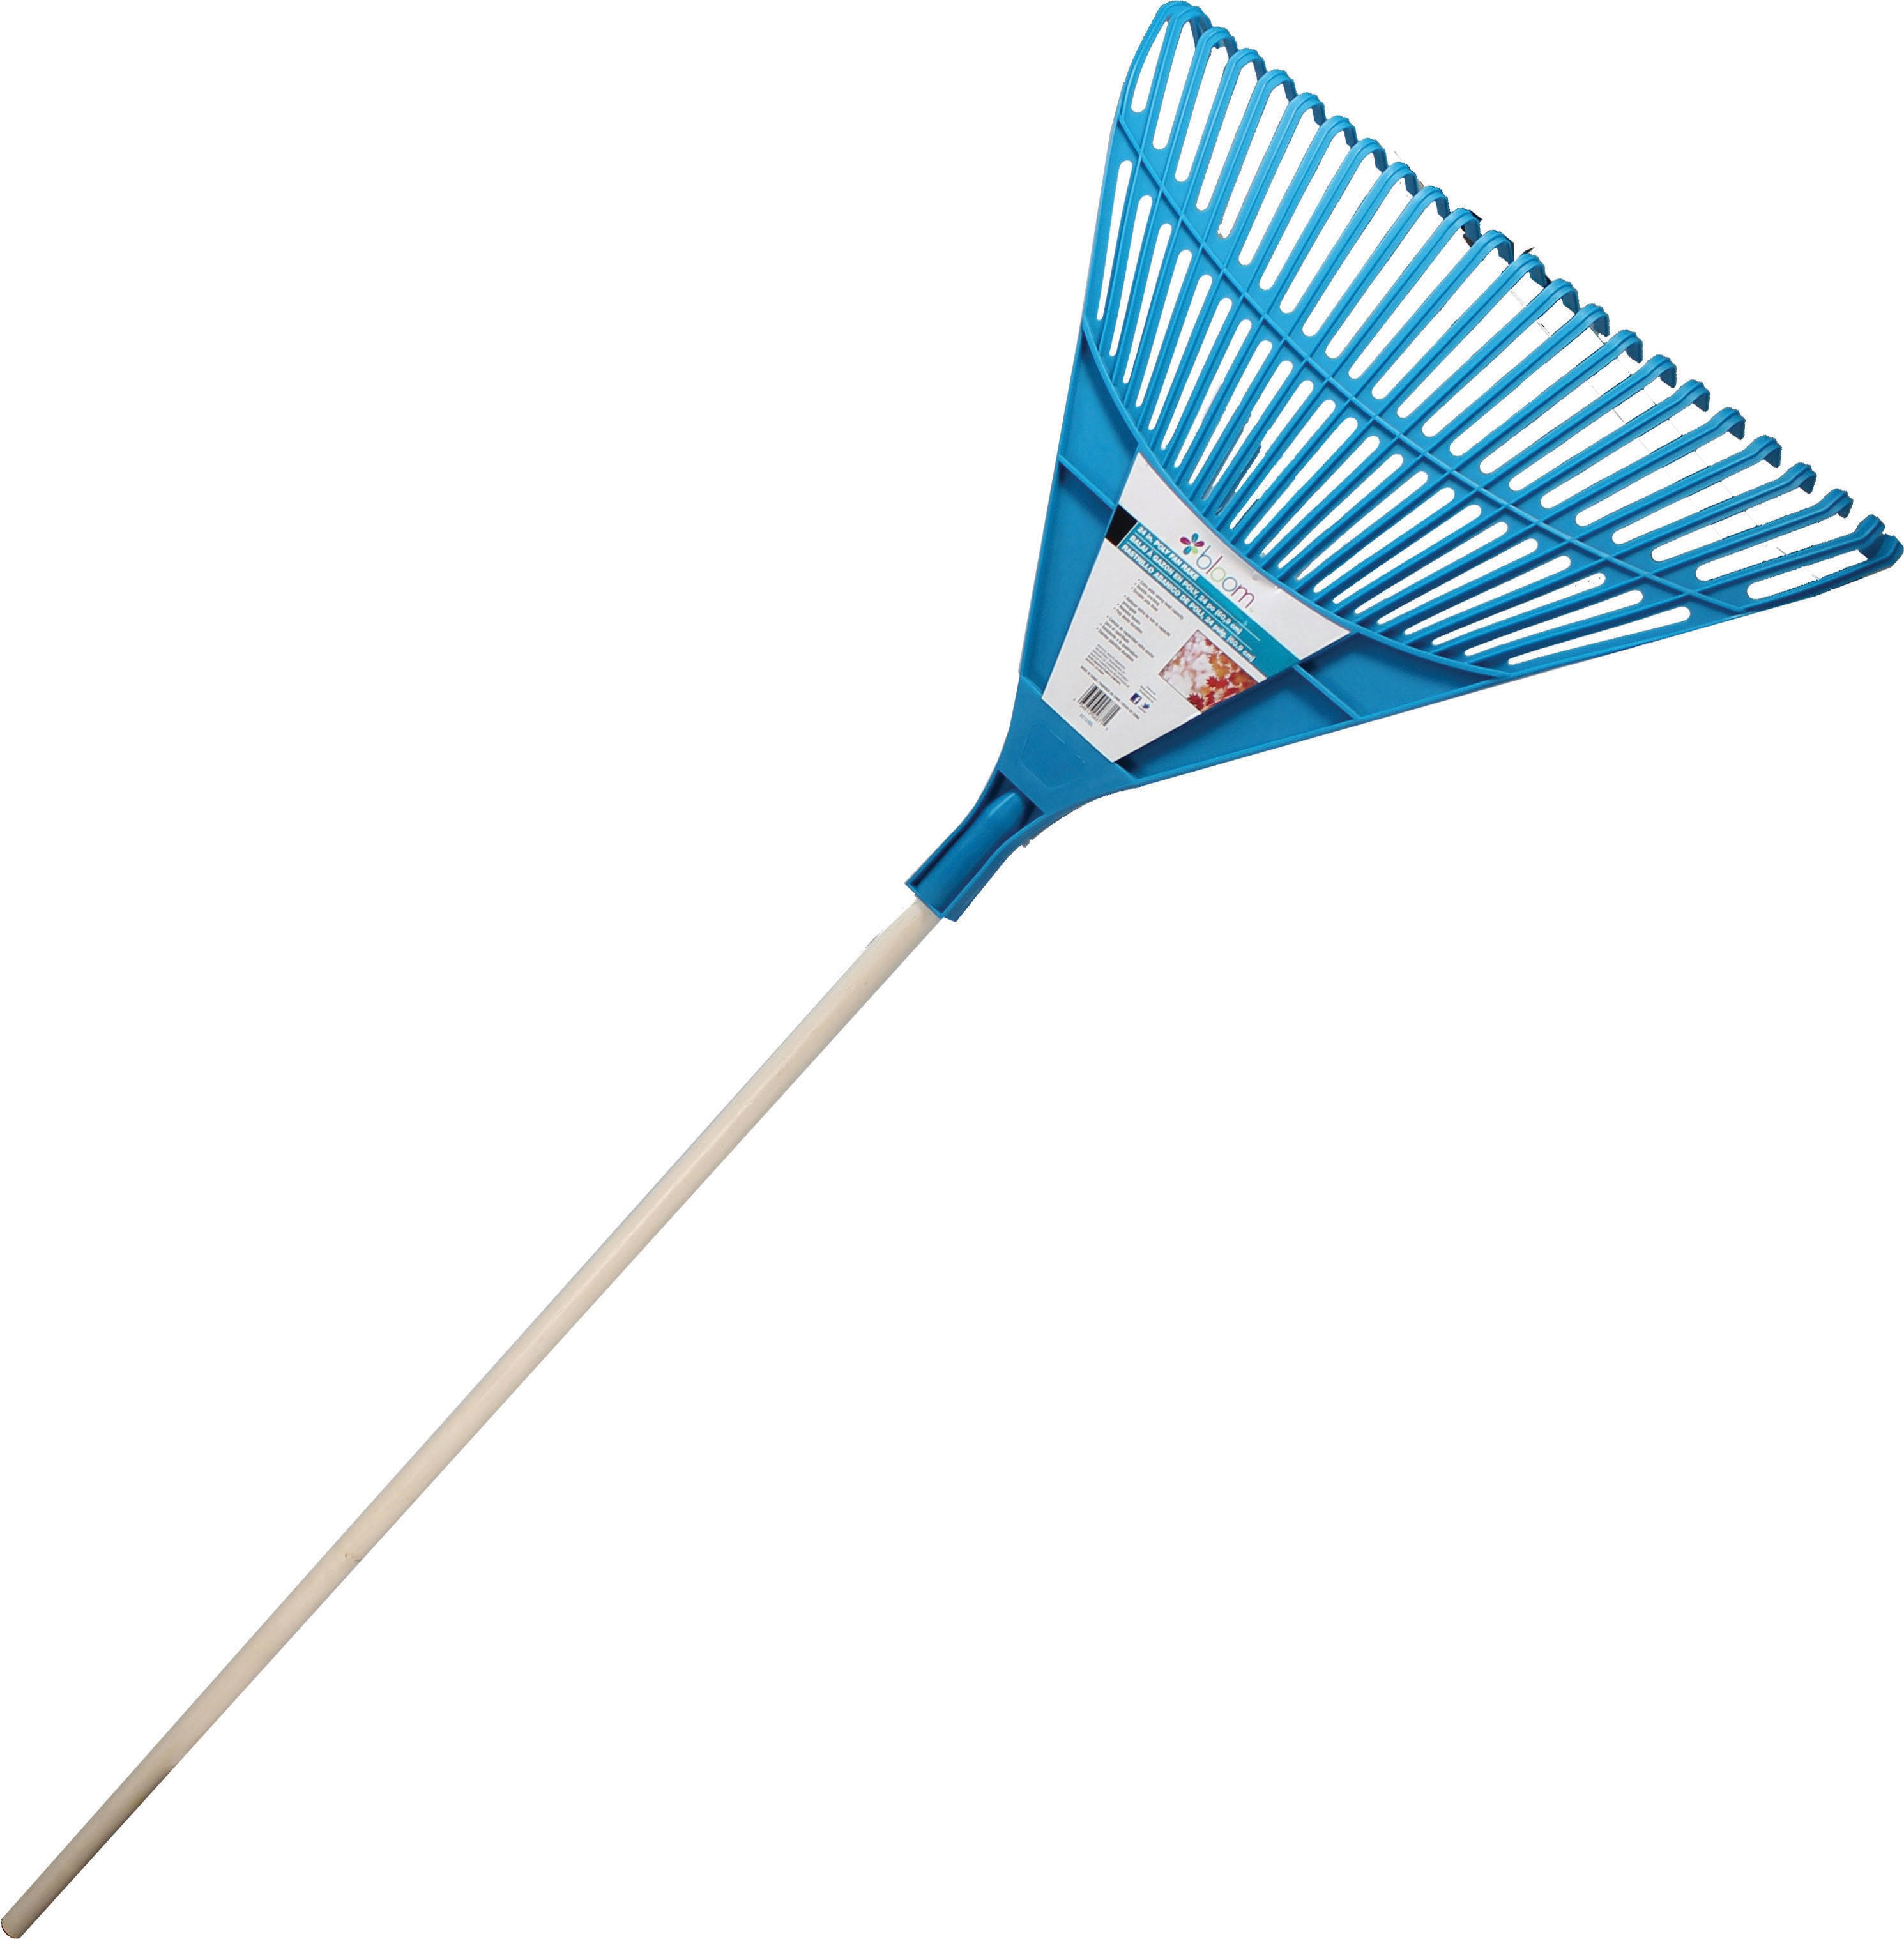 Bond Assorted Bloom Poly Fan Rake 24 inch